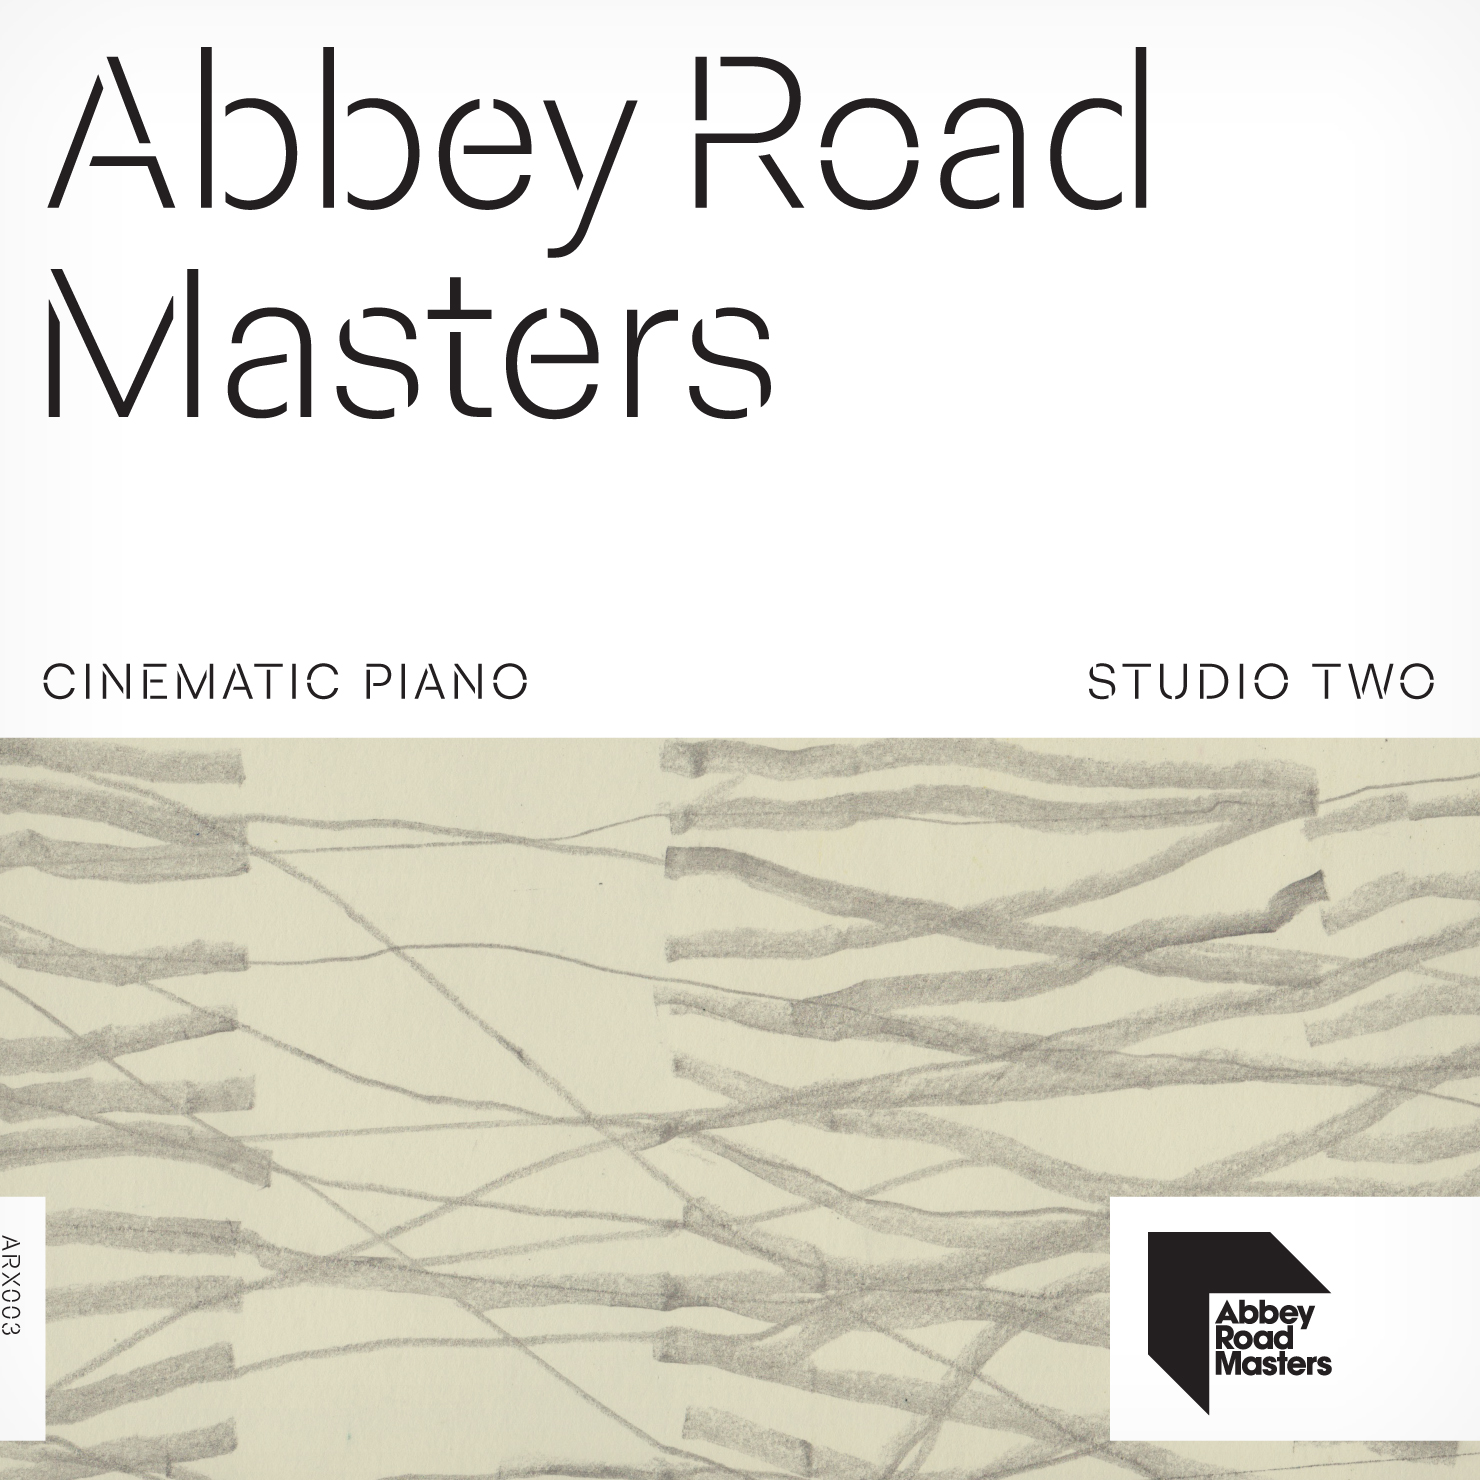 Cinematic Piano: Abbey Road Masters